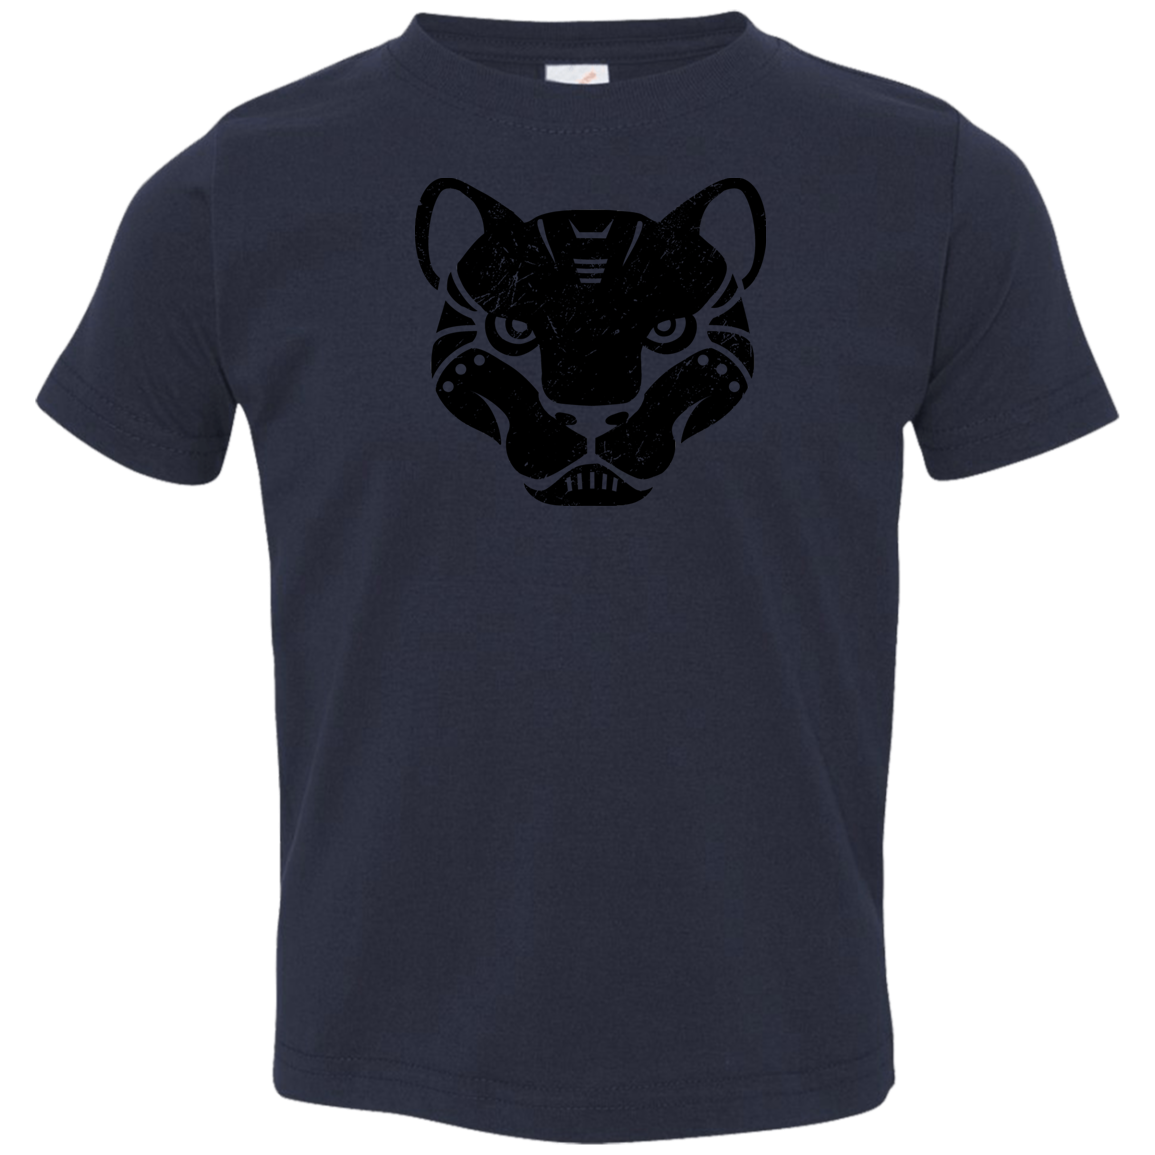 Black Distressed Emblem T-Shirt for Toddlers (Panther/Slash)